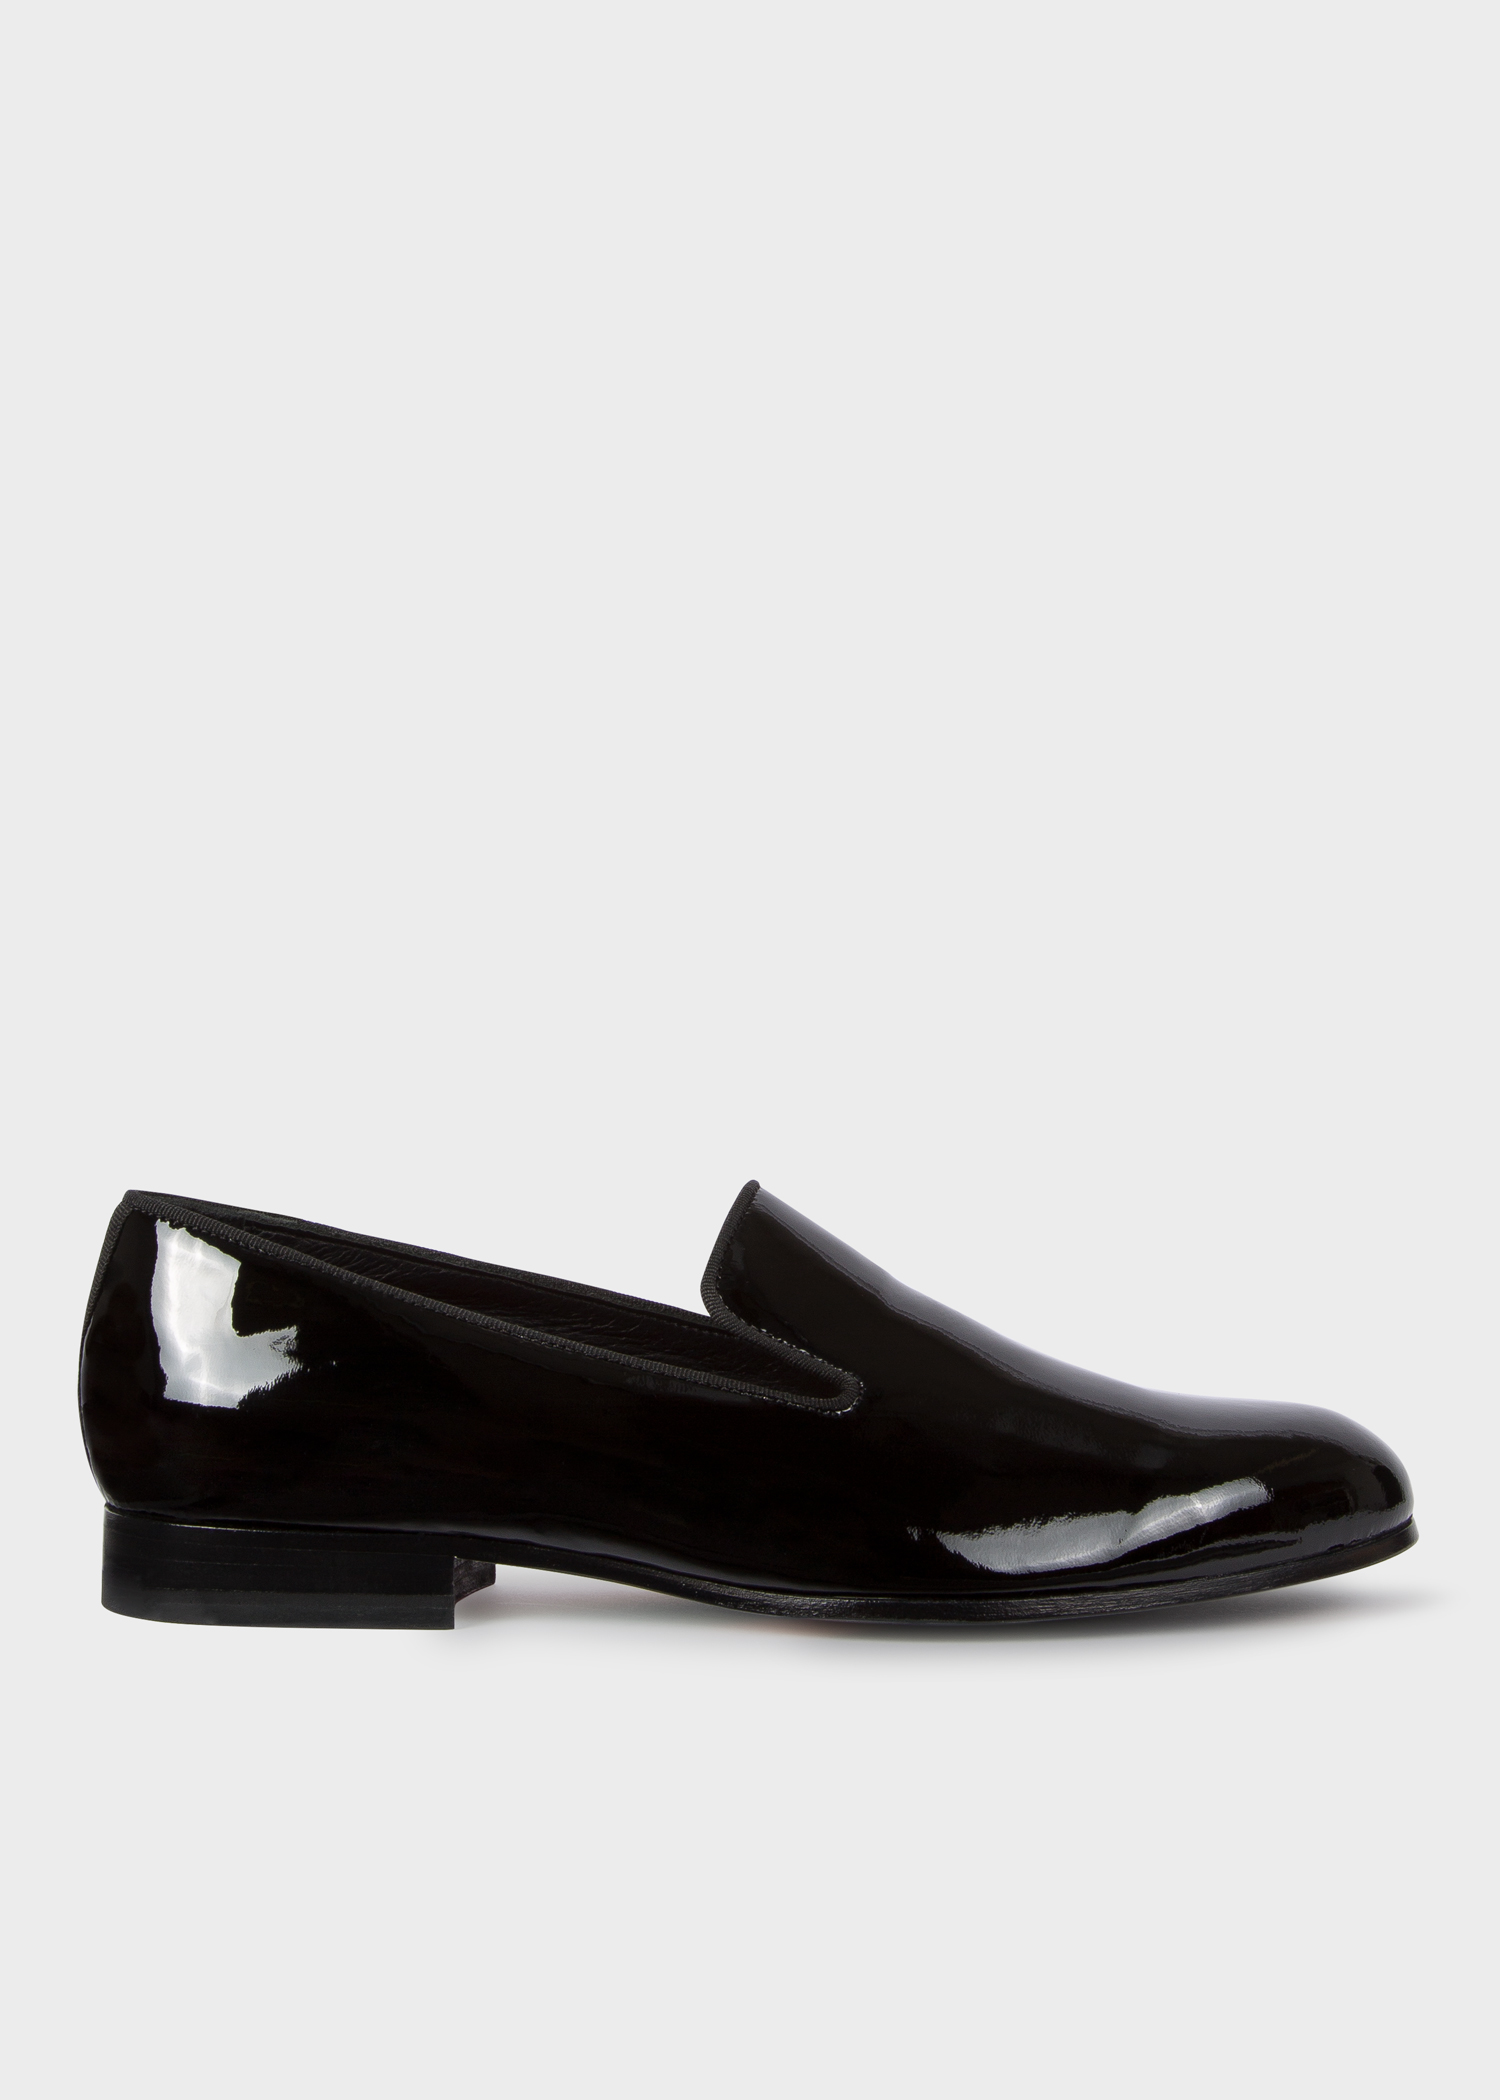 Side view - Women s Black Patent Leather  Rudyard  Loafers Paul Smith